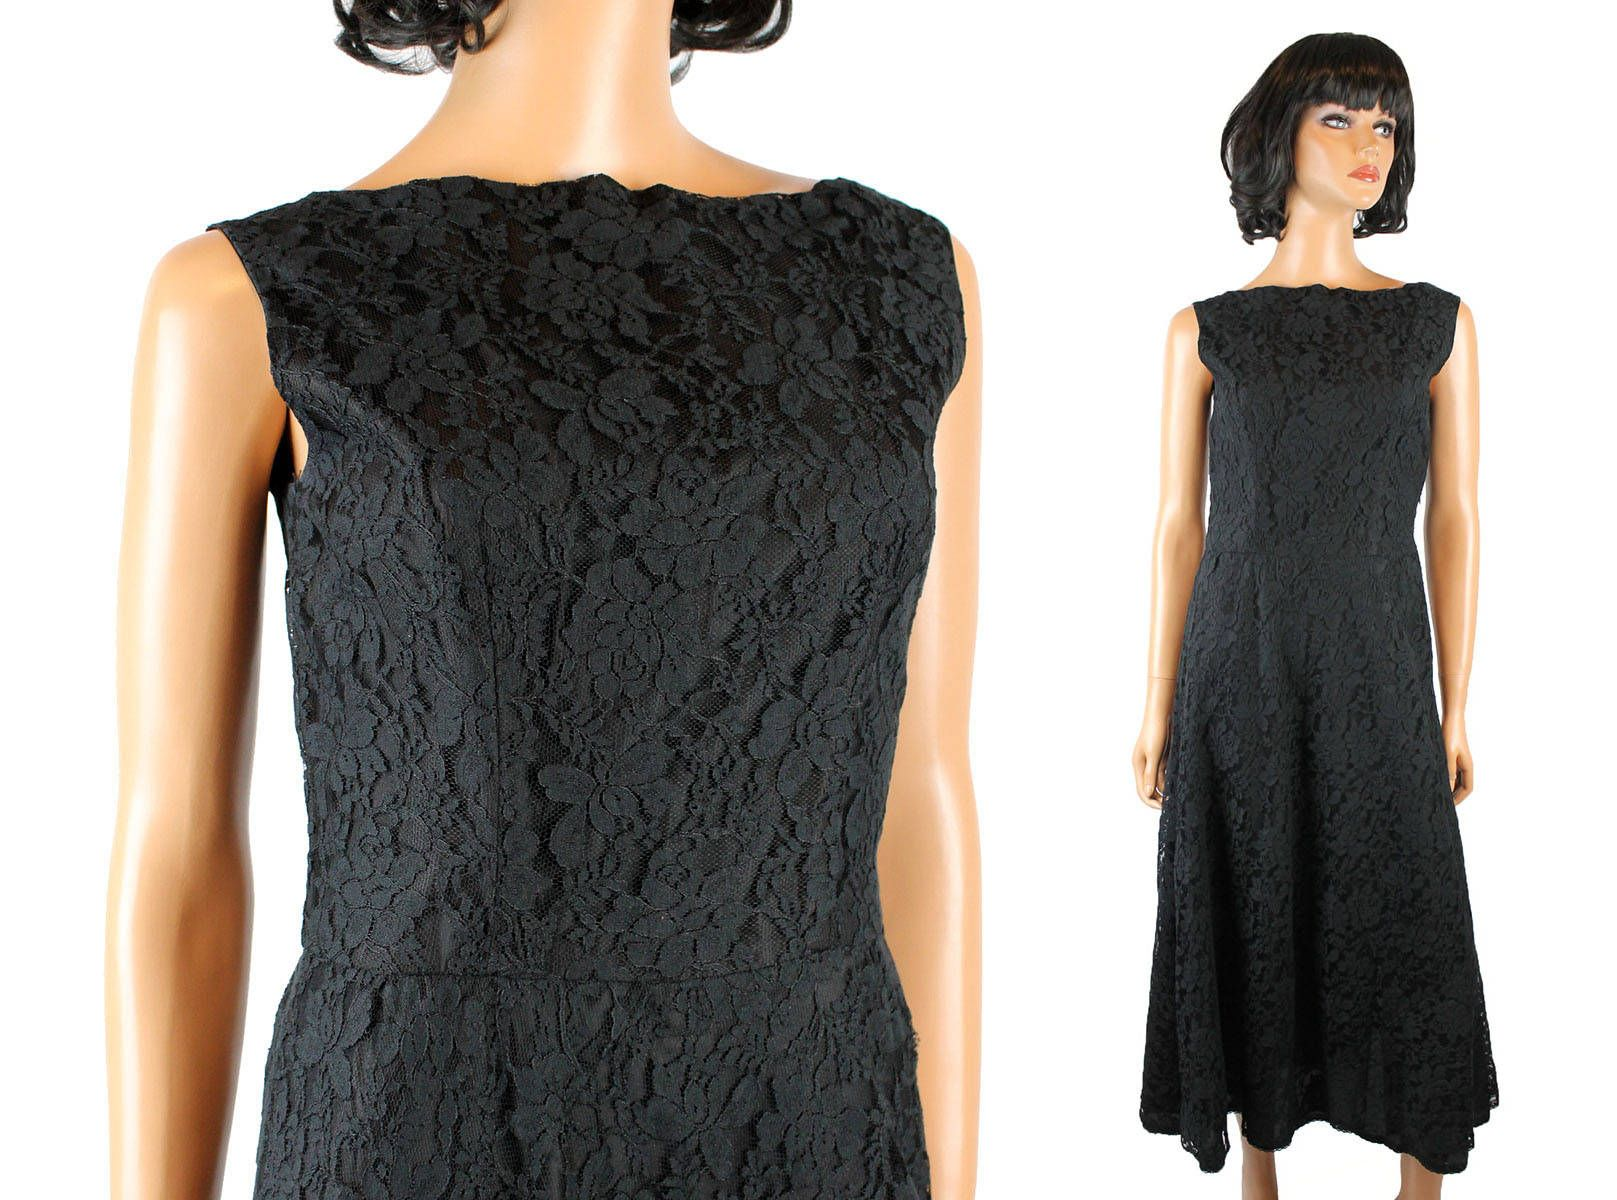 60s Cocktail Dress Sz M Vintage Black Lace Sleeveless Hourglass Low Back Gown Free Us Shipping By Hepcatcloth 60s Cocktail Dress Cocktail Dress Vintage Dresses [ 1200 x 1617 Pixel ]